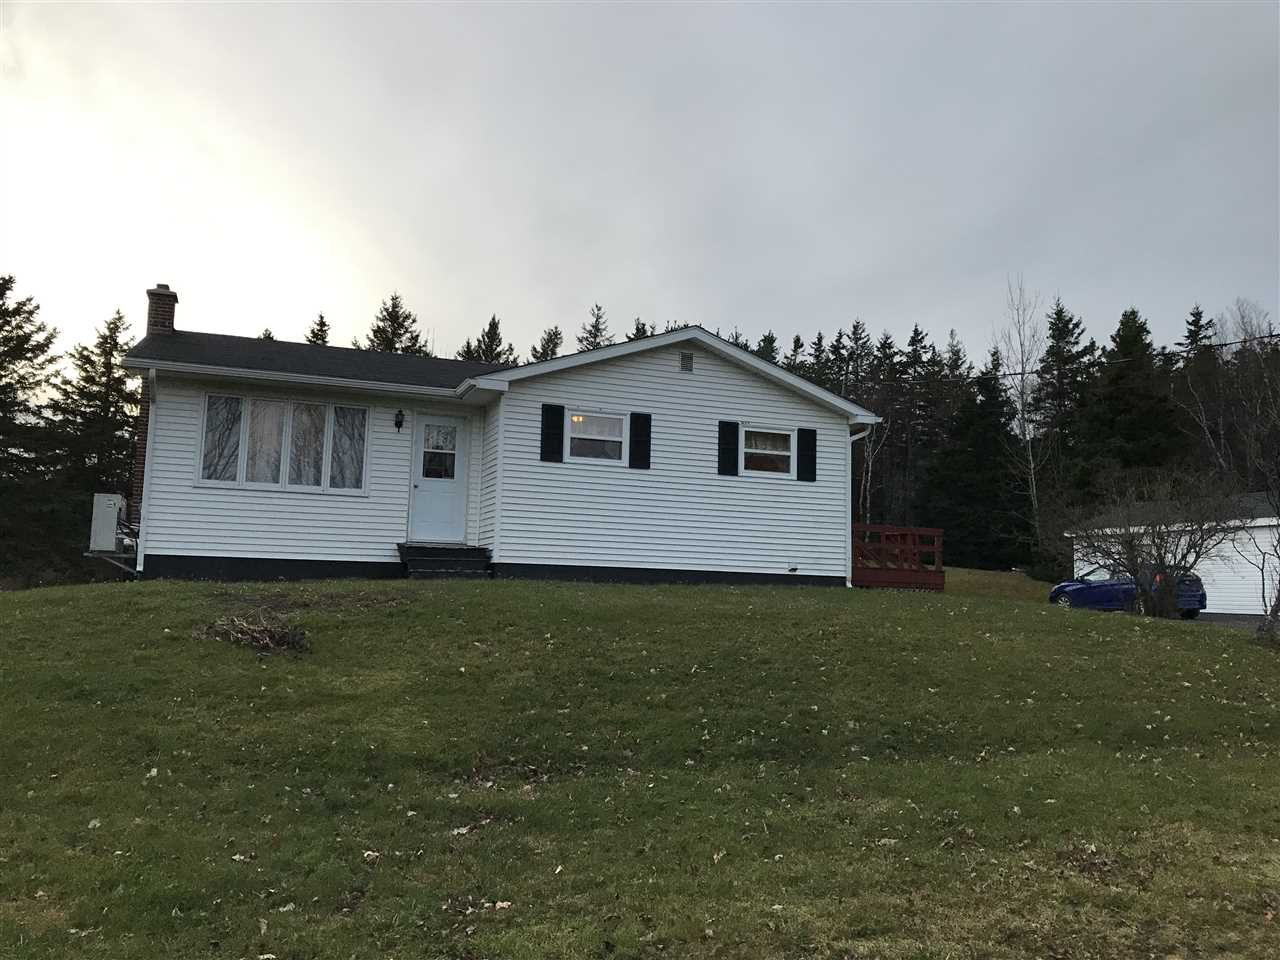 Main Photo: 136 MacDonald Road in Thorburn: 108-Rural Pictou County Residential for sale (Northern Region)  : MLS®# 201926759